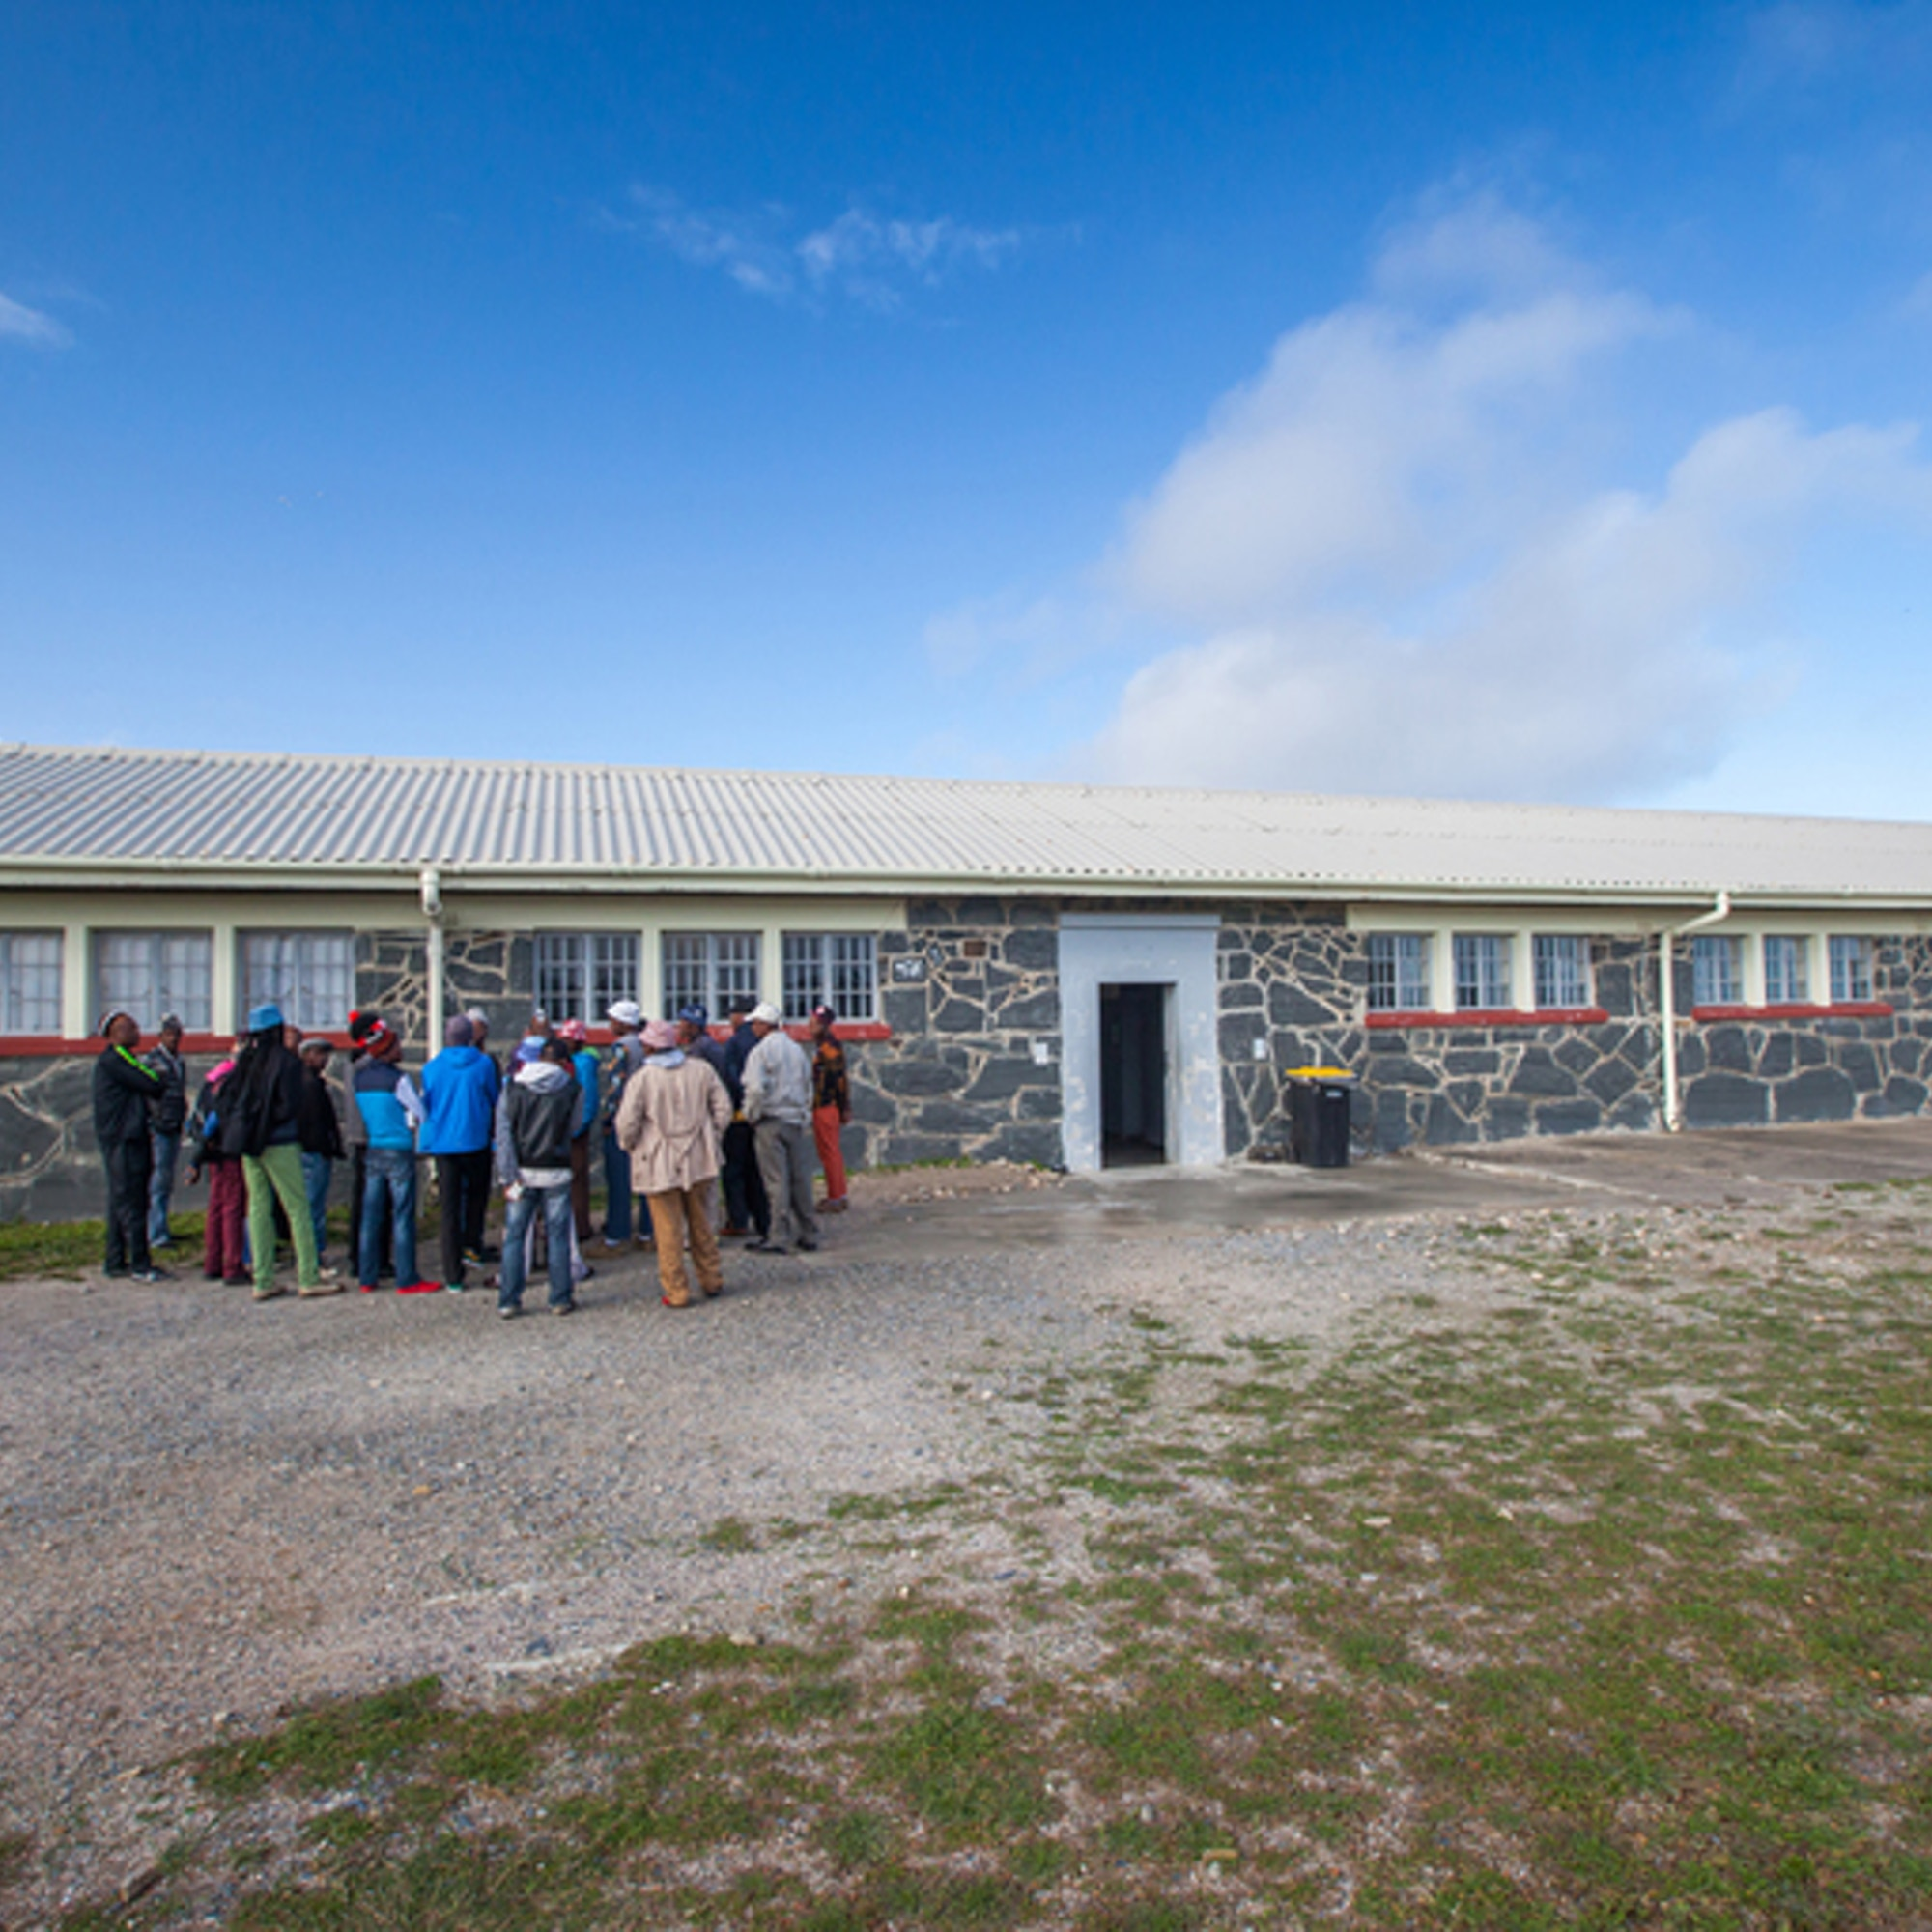 People at Robben Island Museum